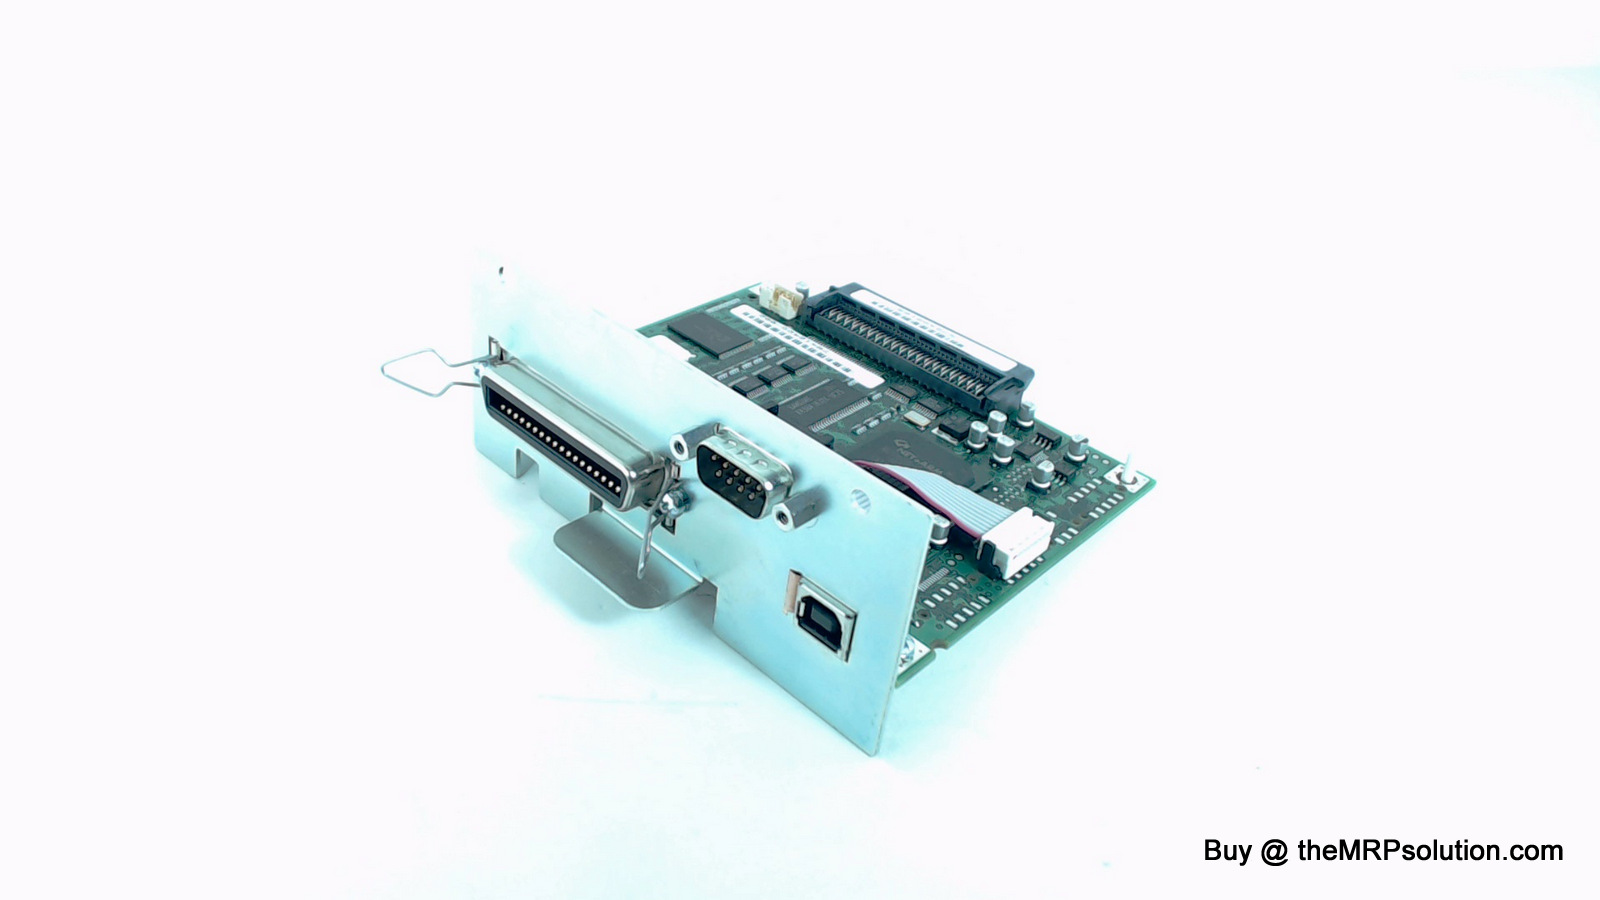 IBM 41U2227 CNTRL CARD, SBCS/P/S/USB, WHITE New